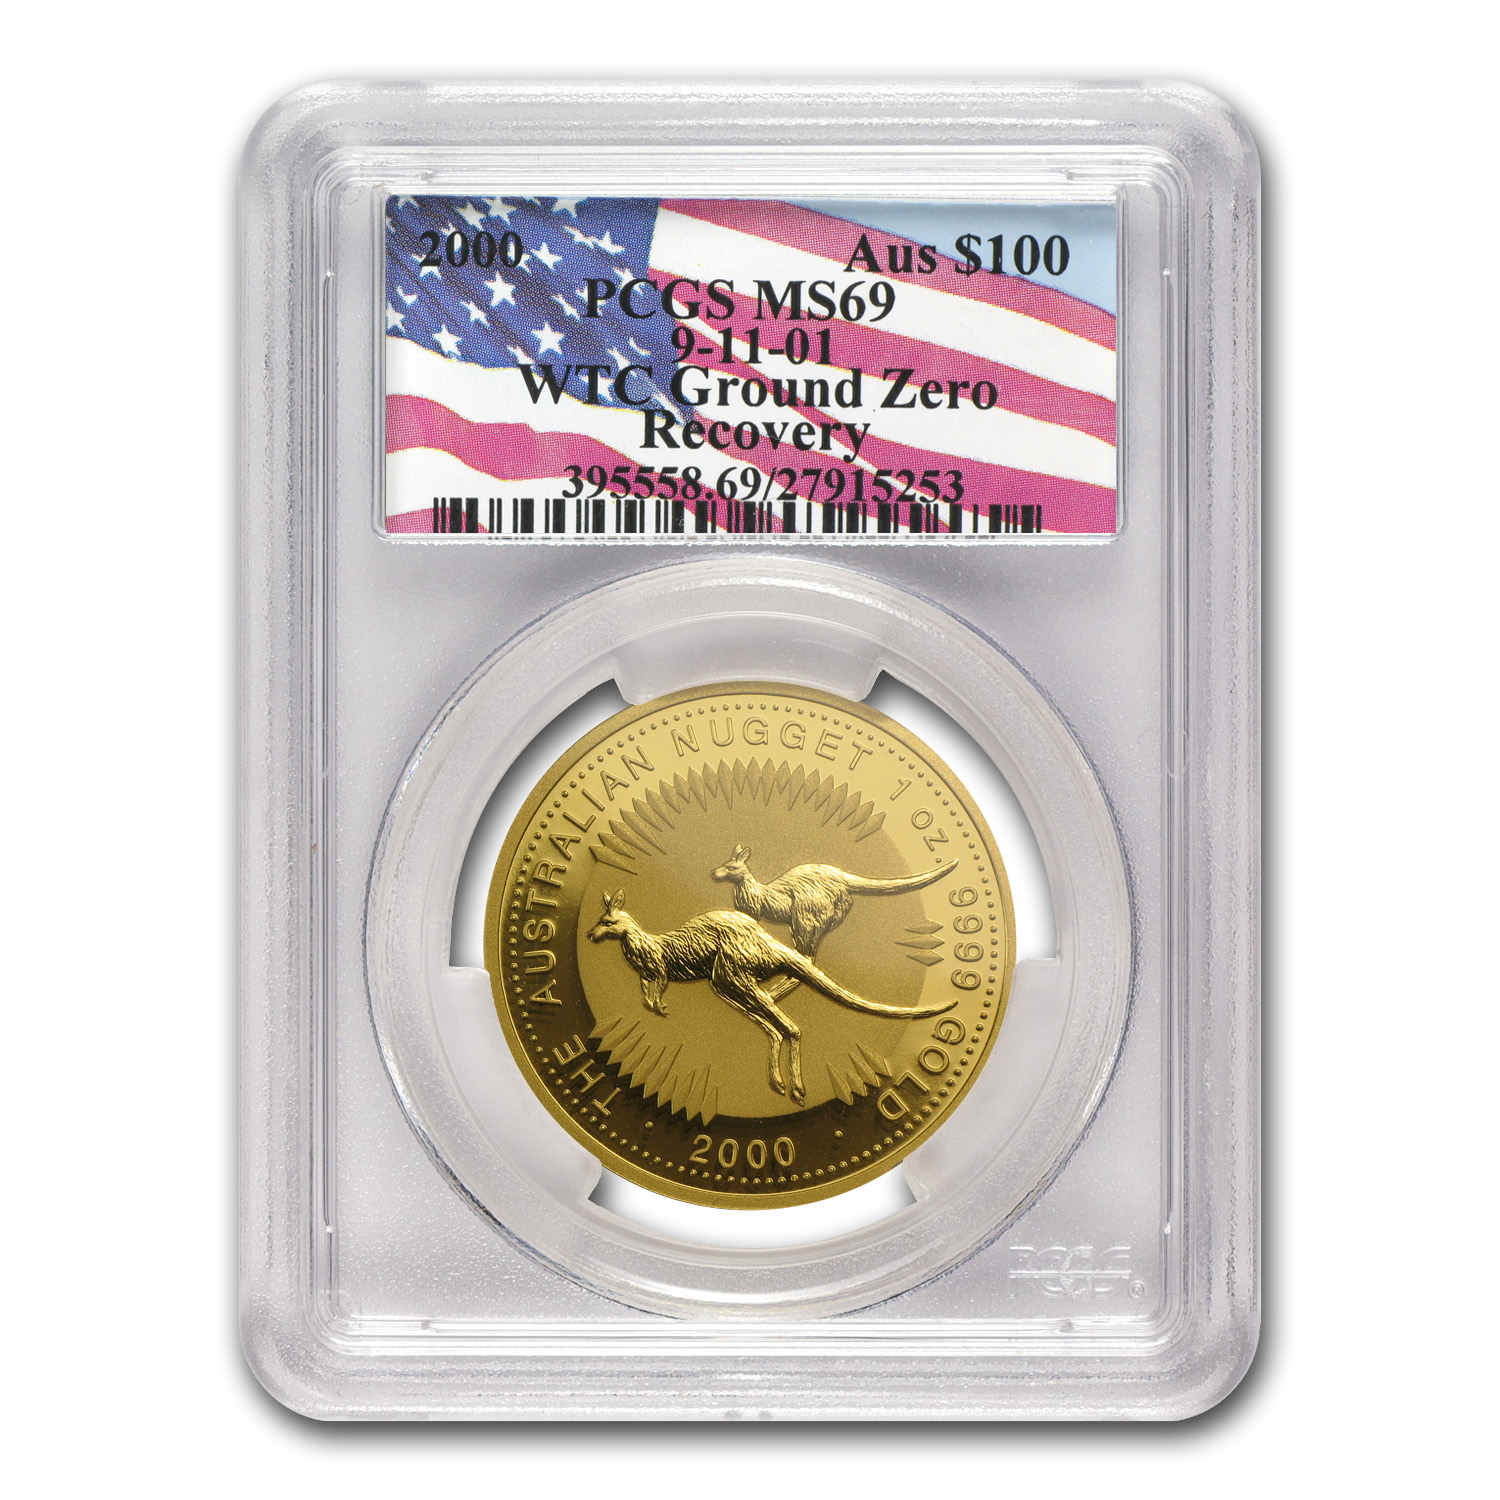 2000 1 oz Australian Gold Nugget MS-69 PCGS (WTC Ground Zero)